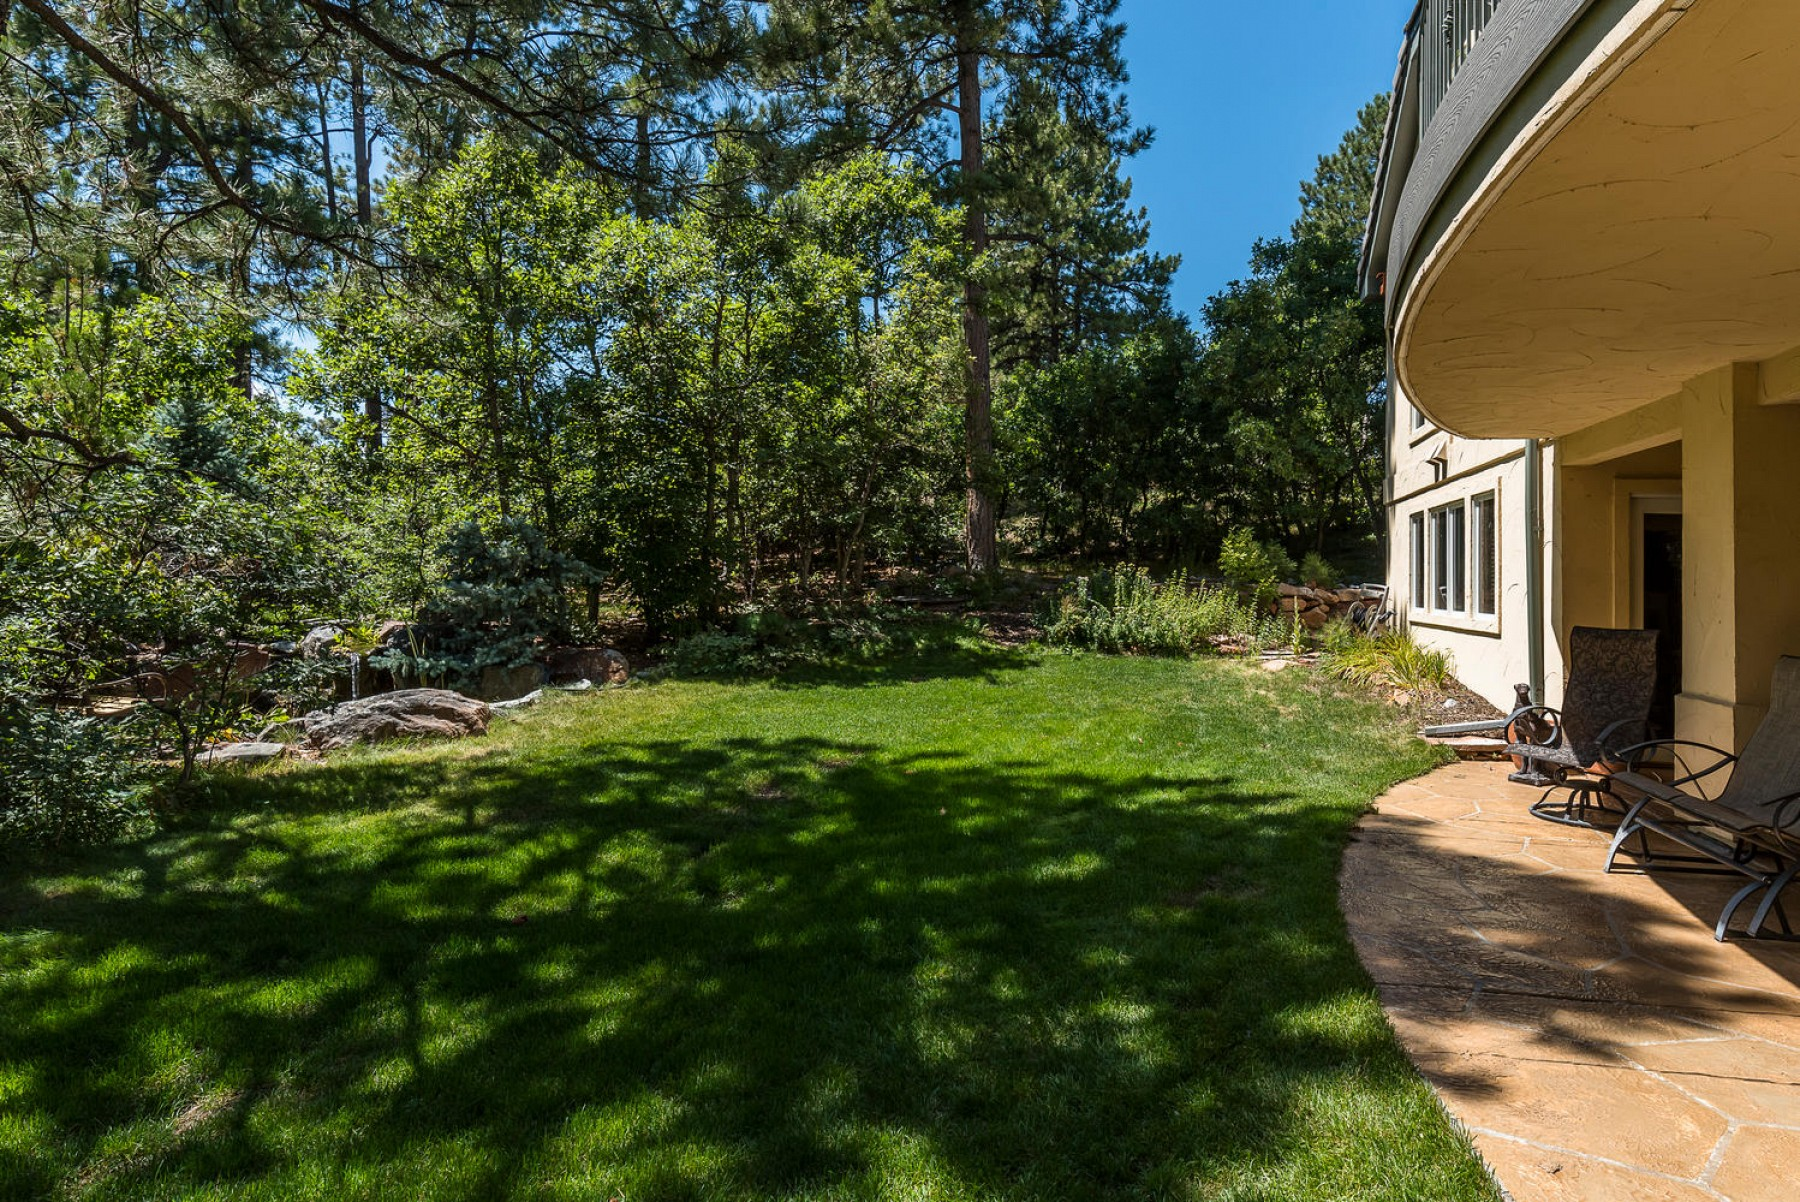 82 Crestone Way, Castle Pines, CO 80108